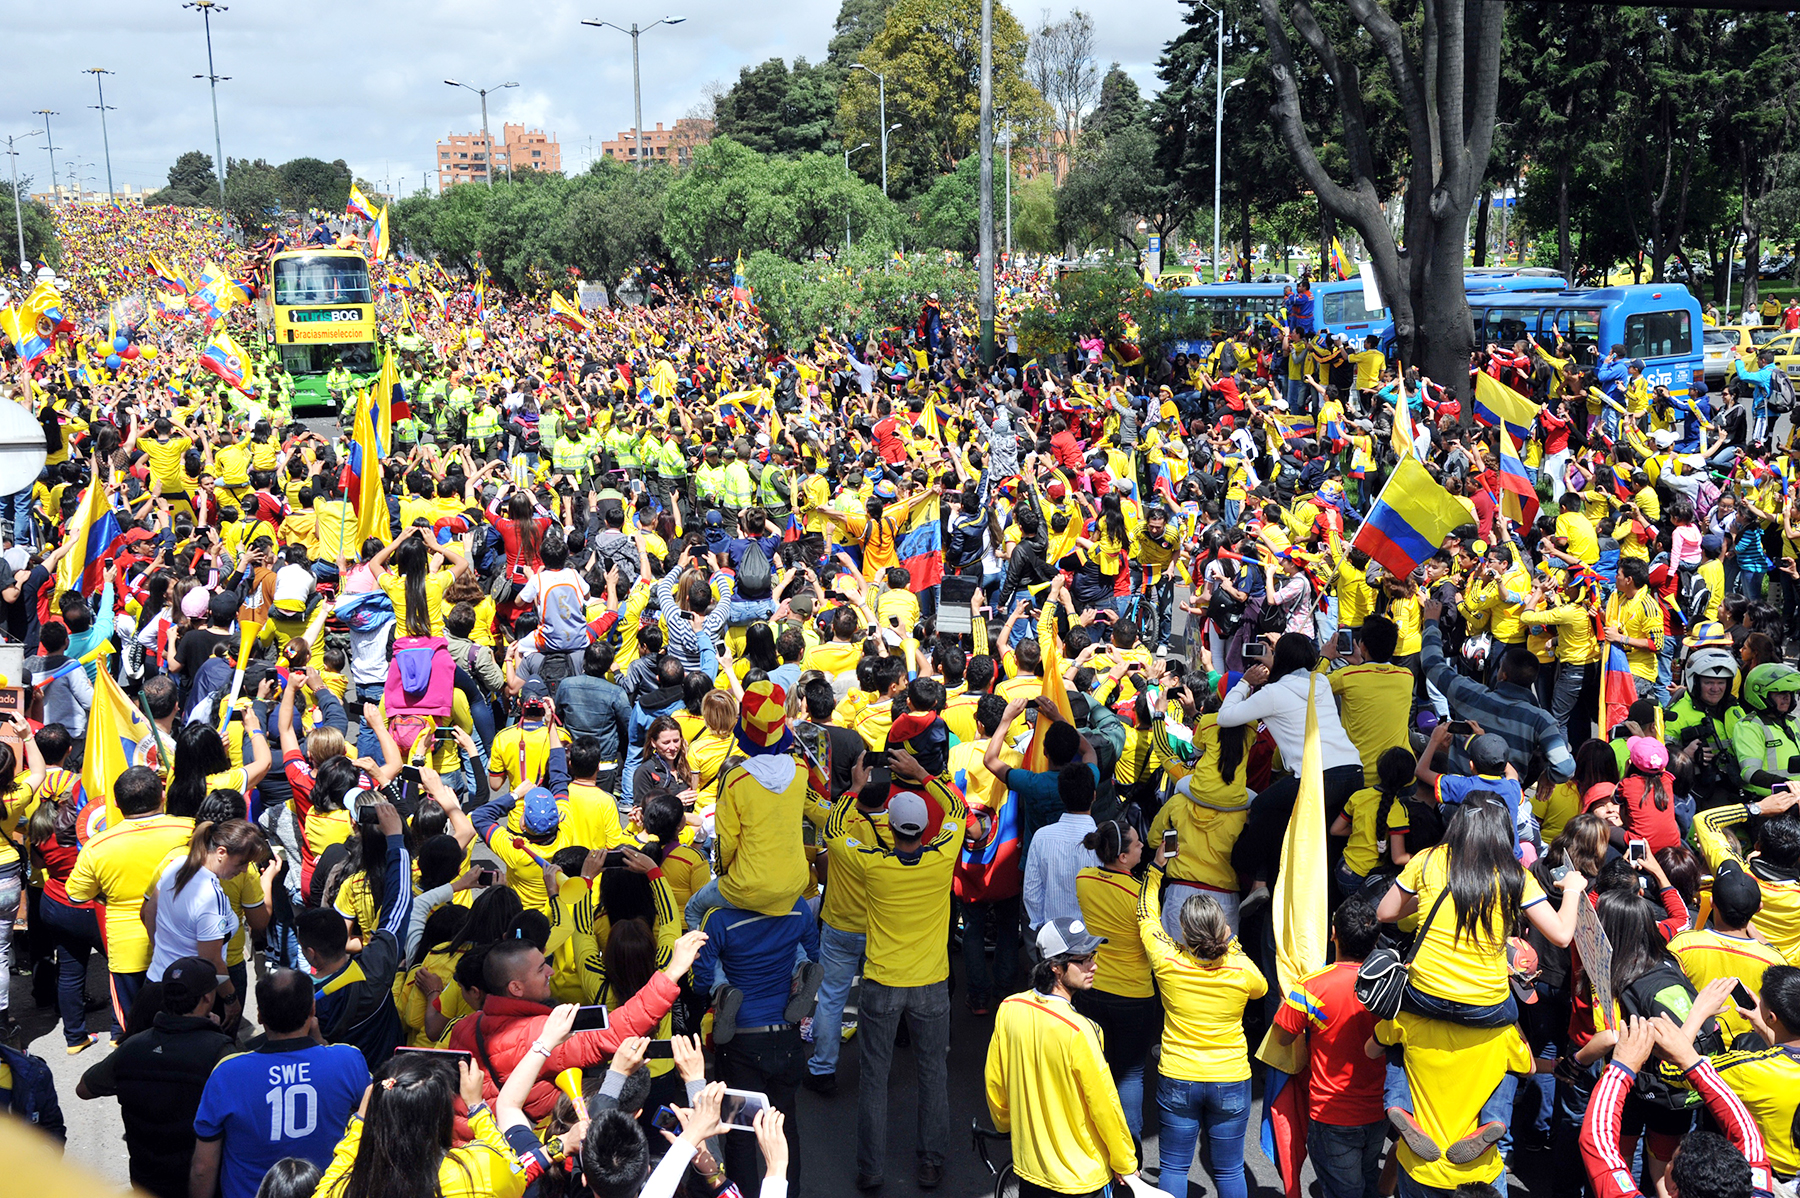 A crowd of Colombian fans greet their national football team upon their arrival in Bogota after the FIFA World Cup Brazil 2014, on July 6, 2014. Photo: Getty Images